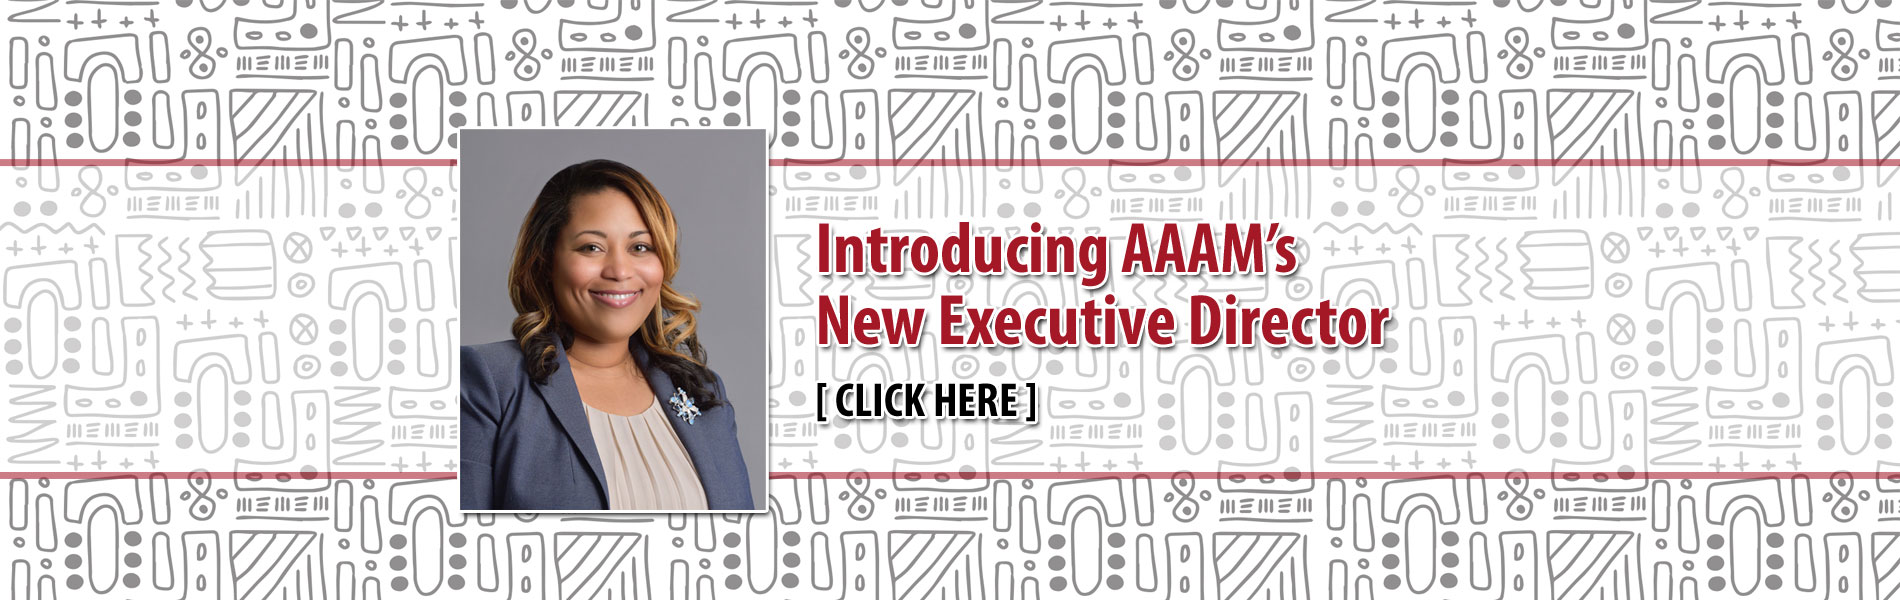 Introducing AAAM's New Executive Director